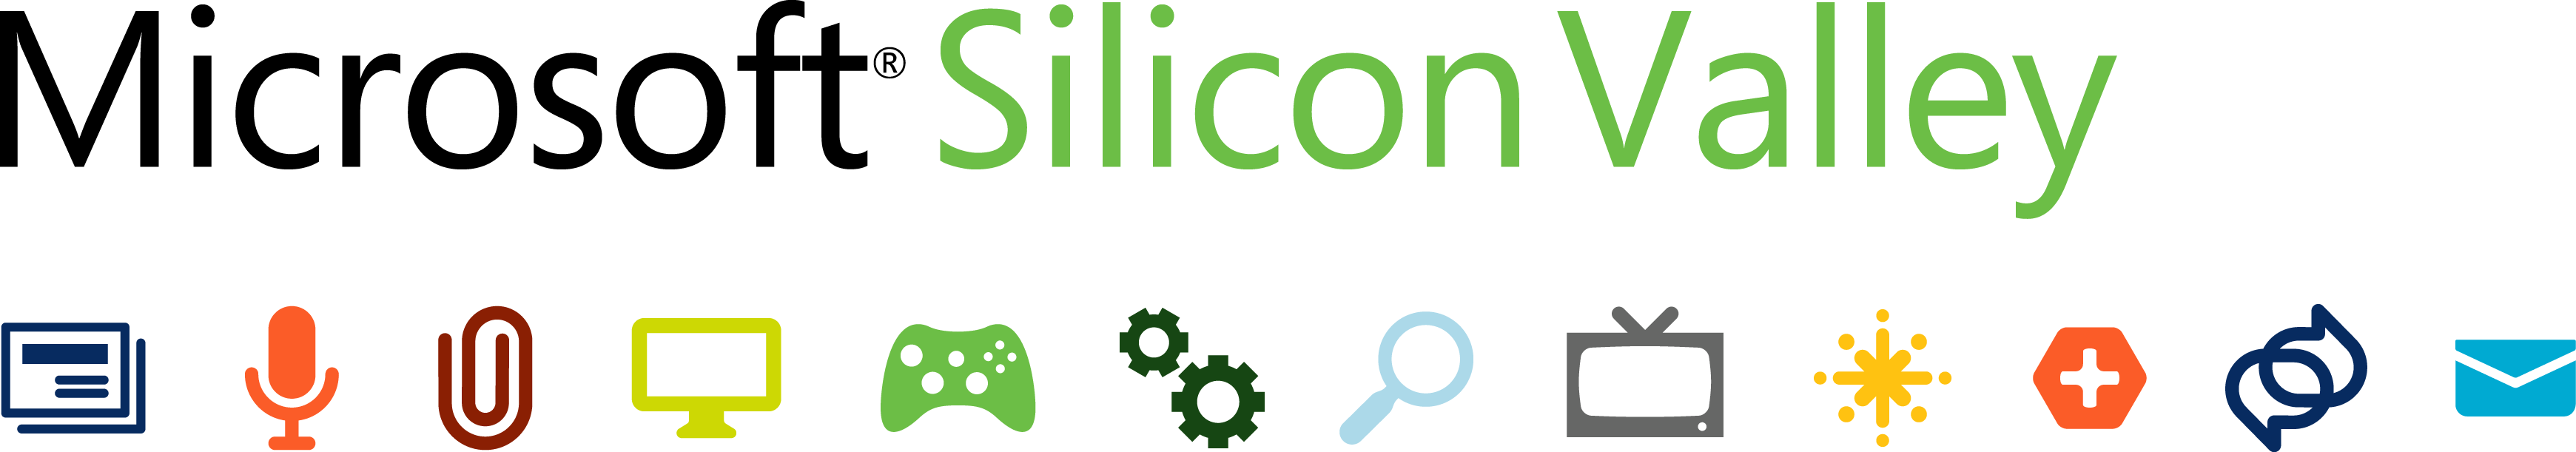 Microsoft - Silicon Valley Campus Logo